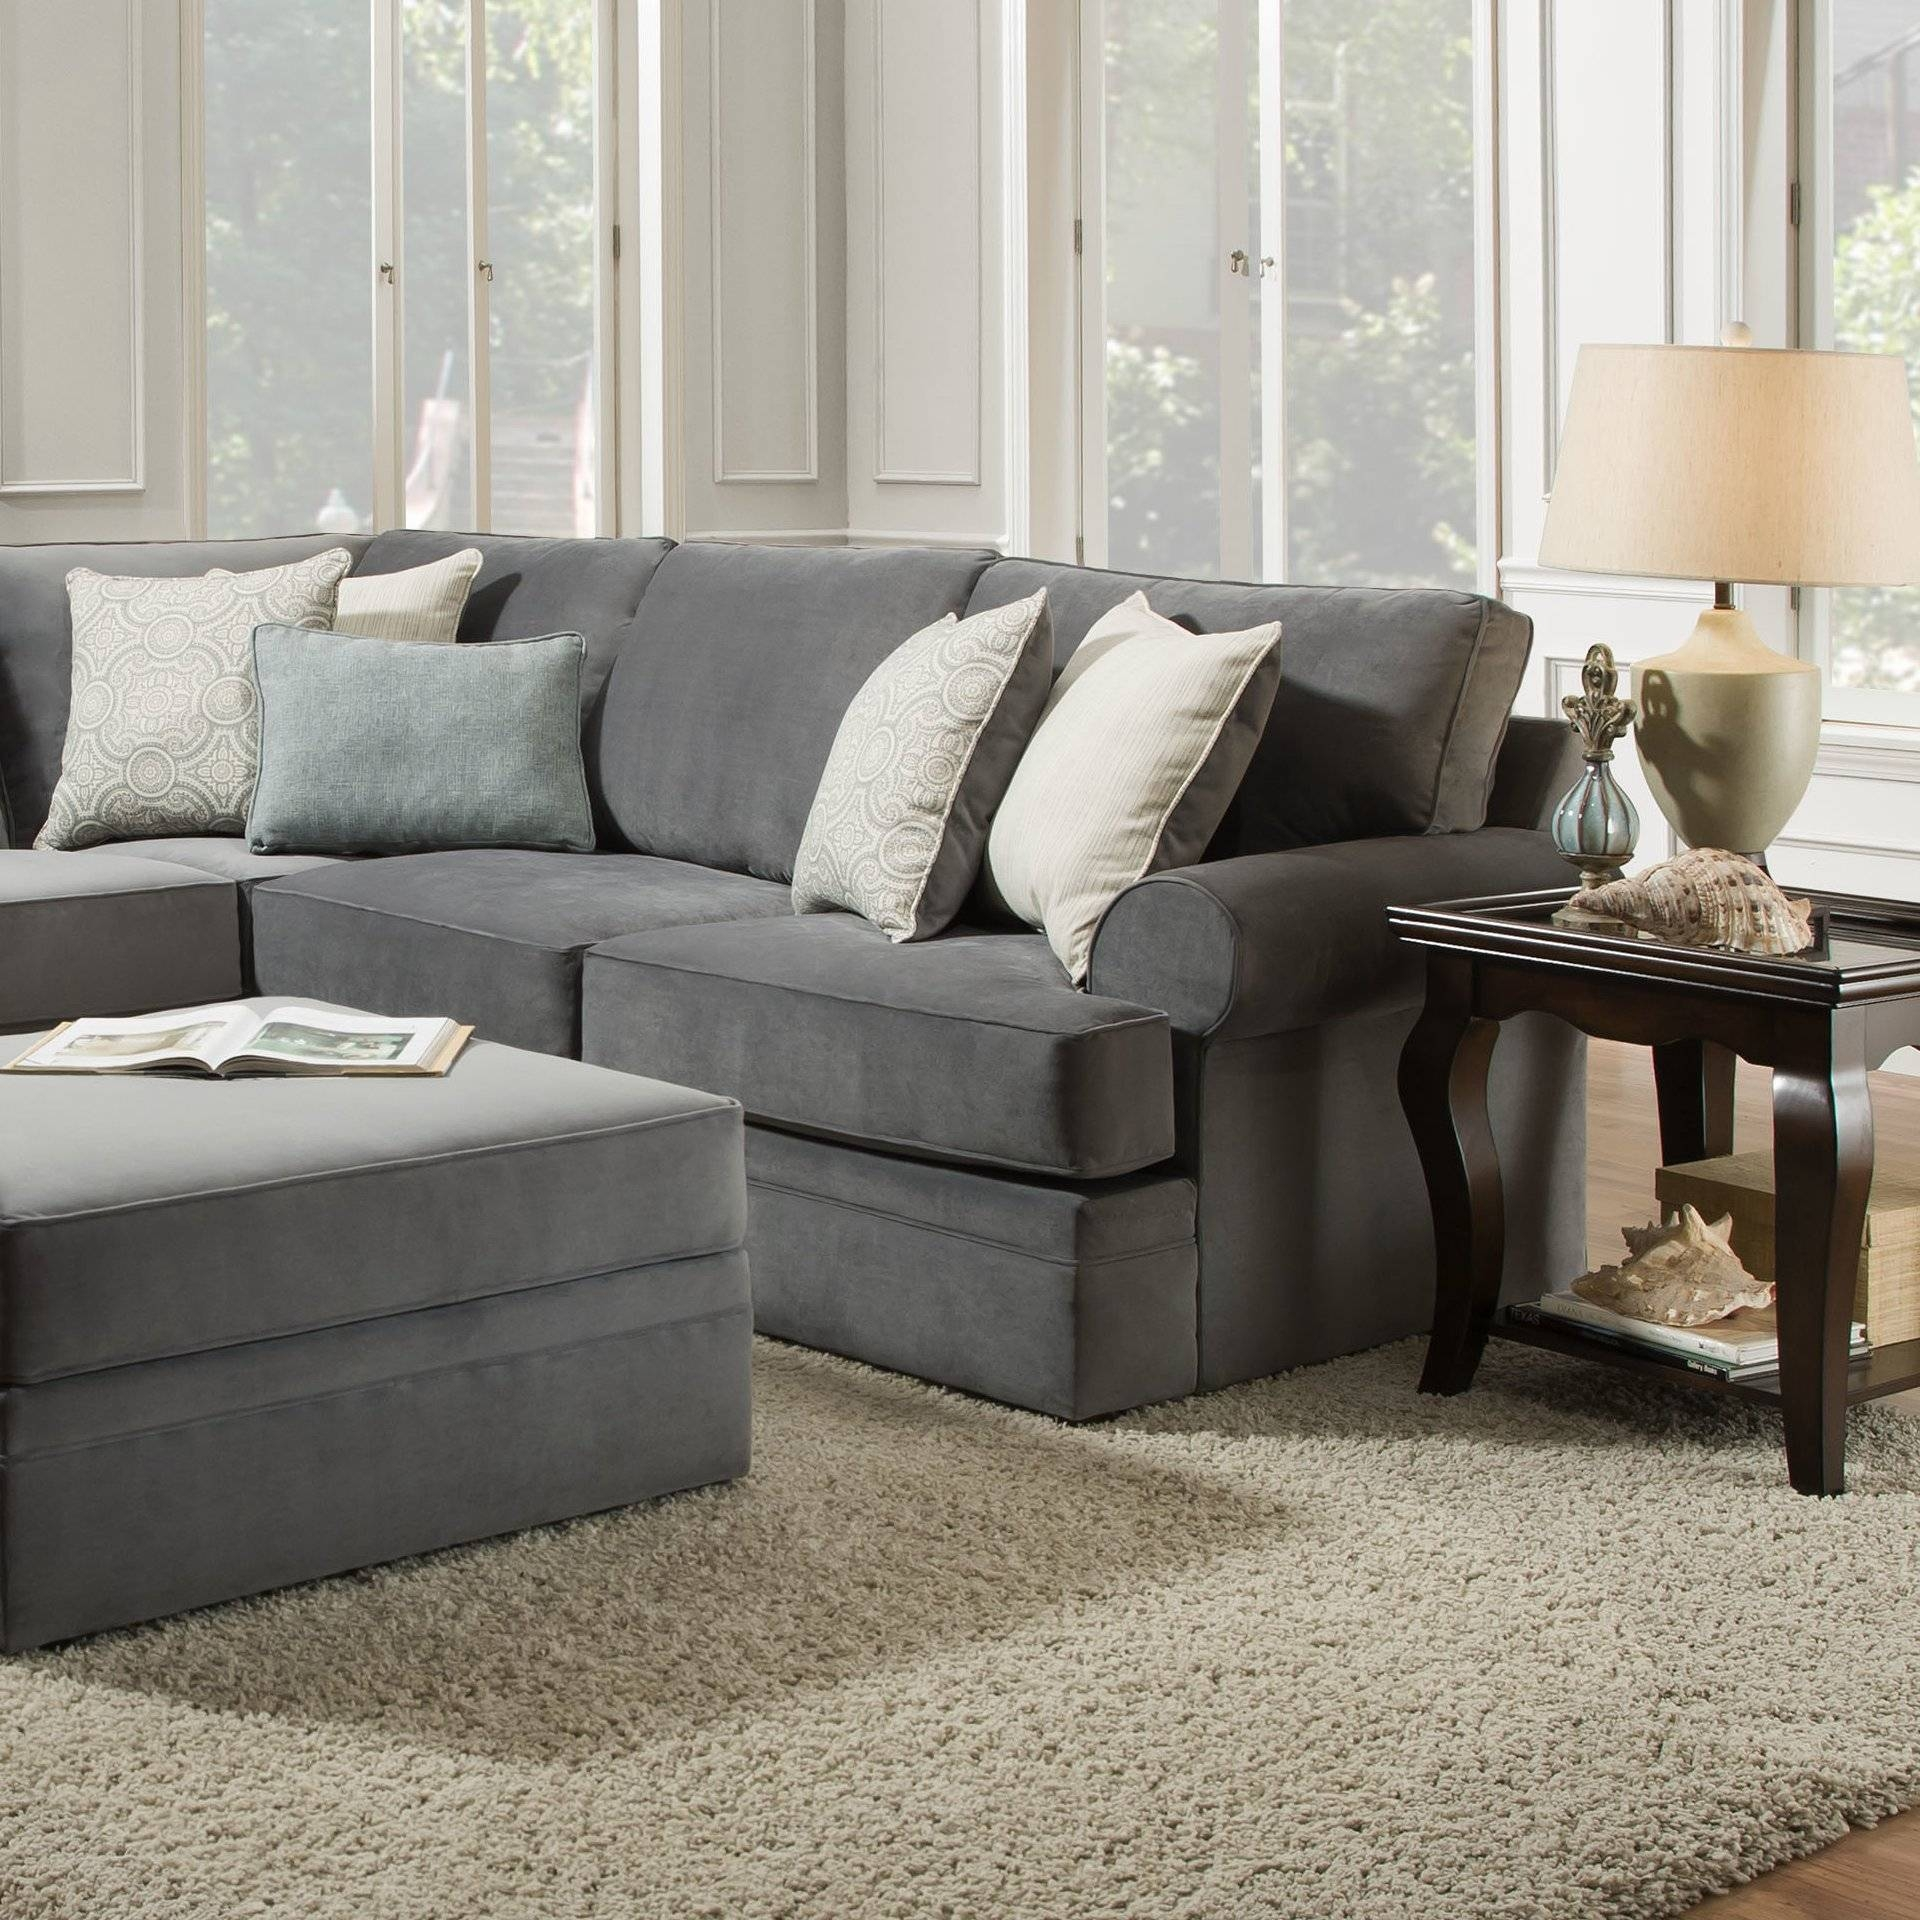 Furniture: Bonded Leather Sectional | Simmons Sectional | Big Lots with Big Lots Simmons Sectional Sofas (Image 3 of 15)